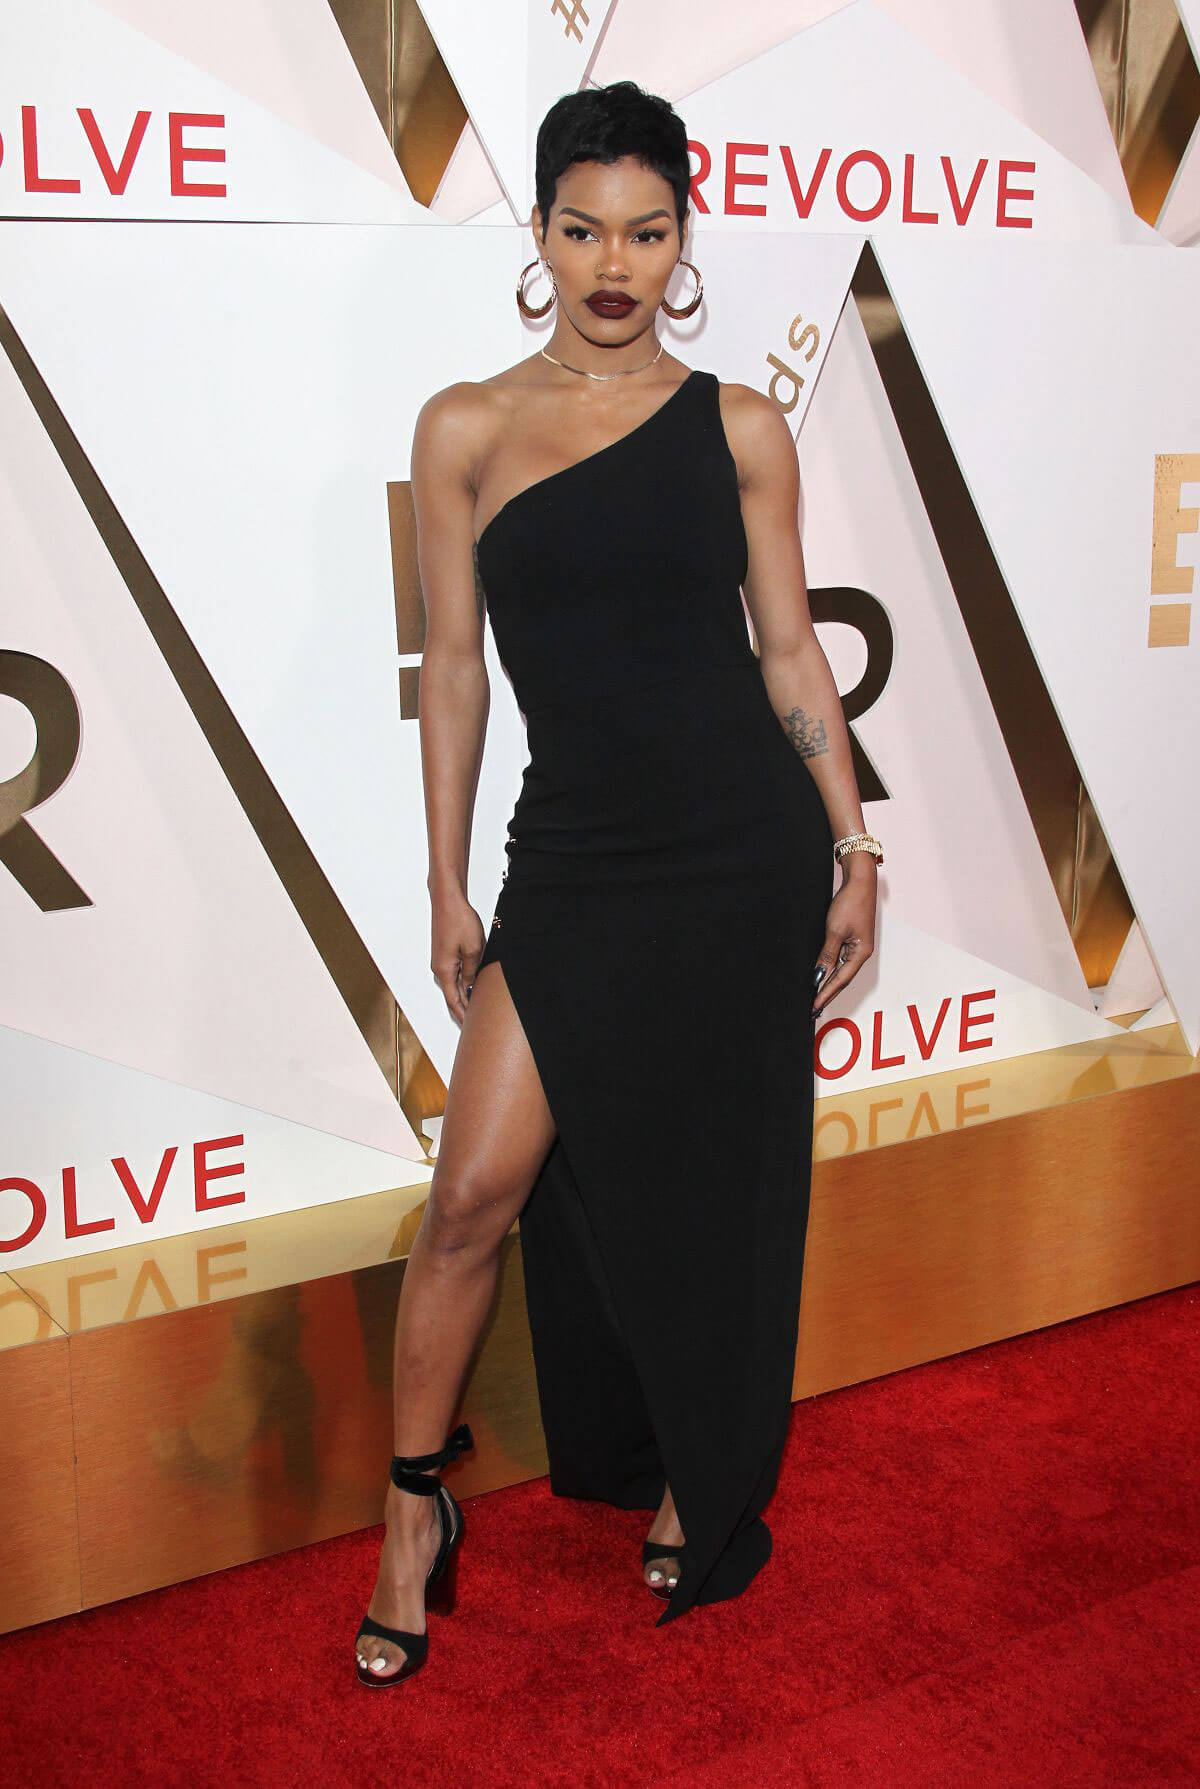 Teyana Taylor wears Black Dress at #revolveawards in Hollywood